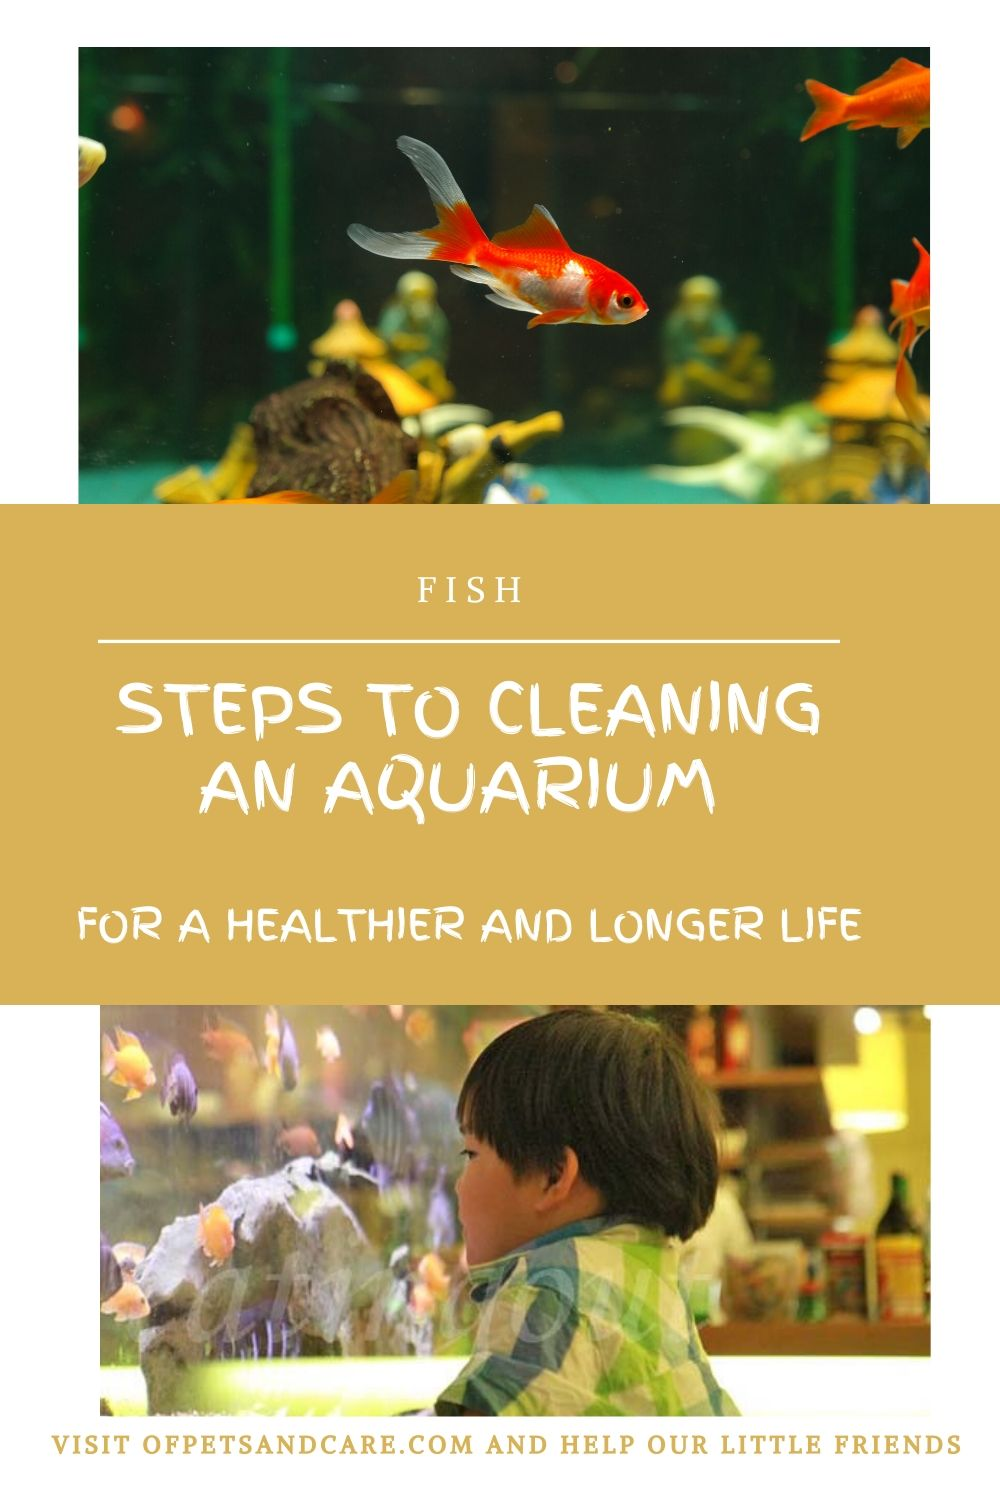 Steps to Cleaning an Aquarium for a Healthier and Longer Life,